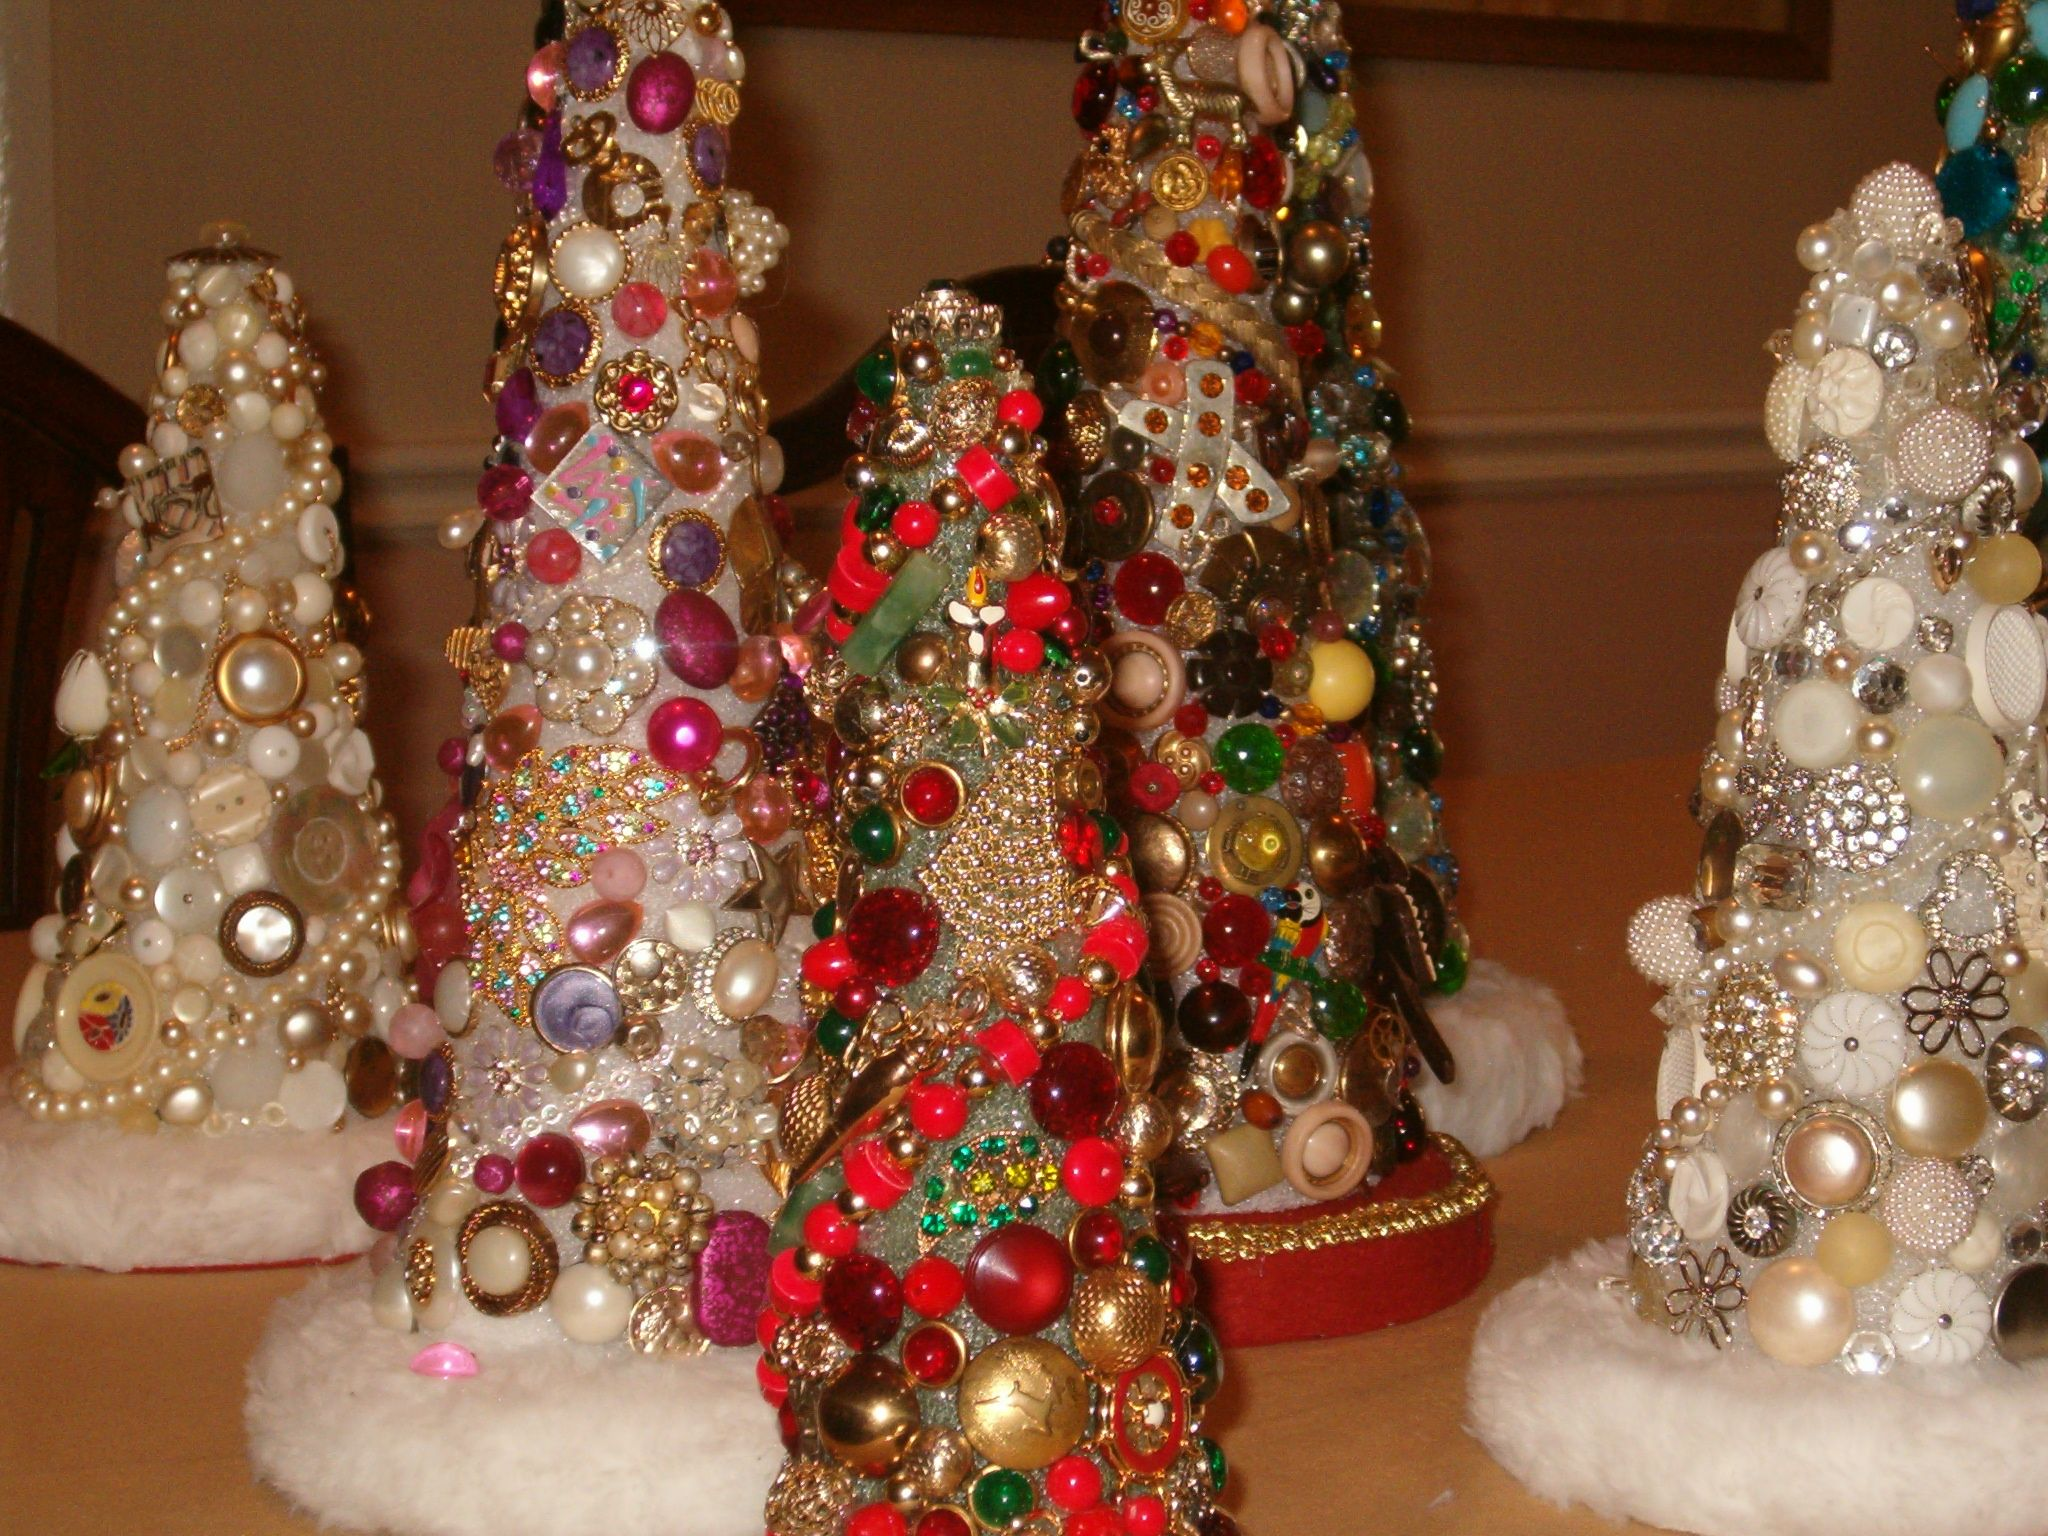 Vintage Jewelry Trees from 2005